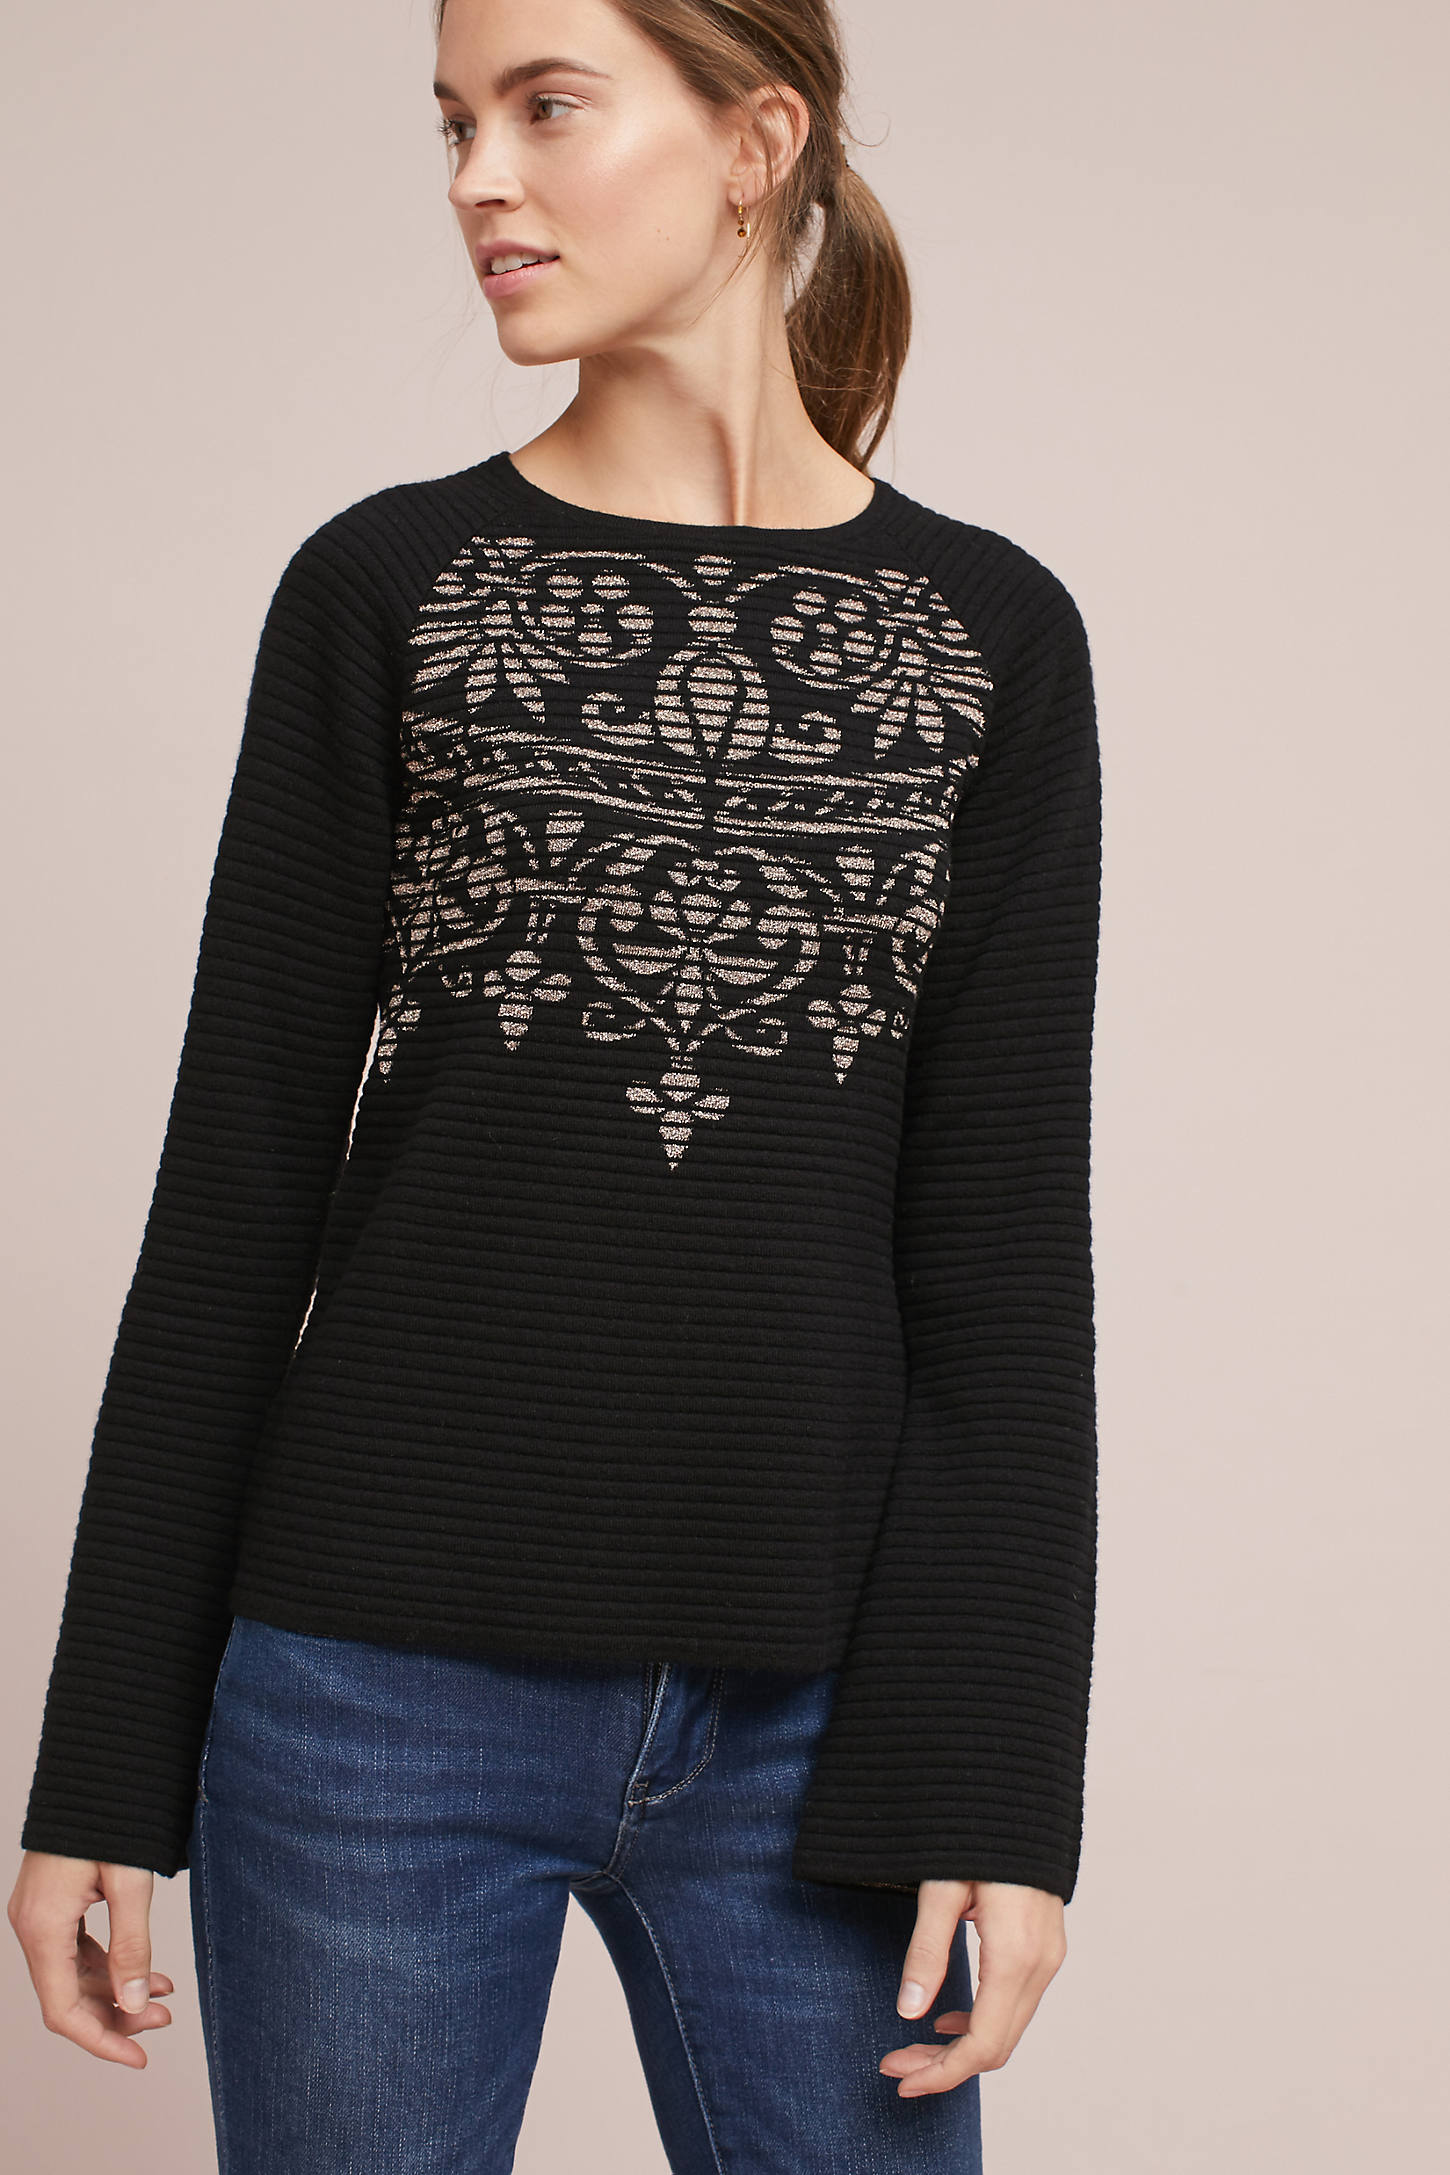 Lucy Jacquard Pullover